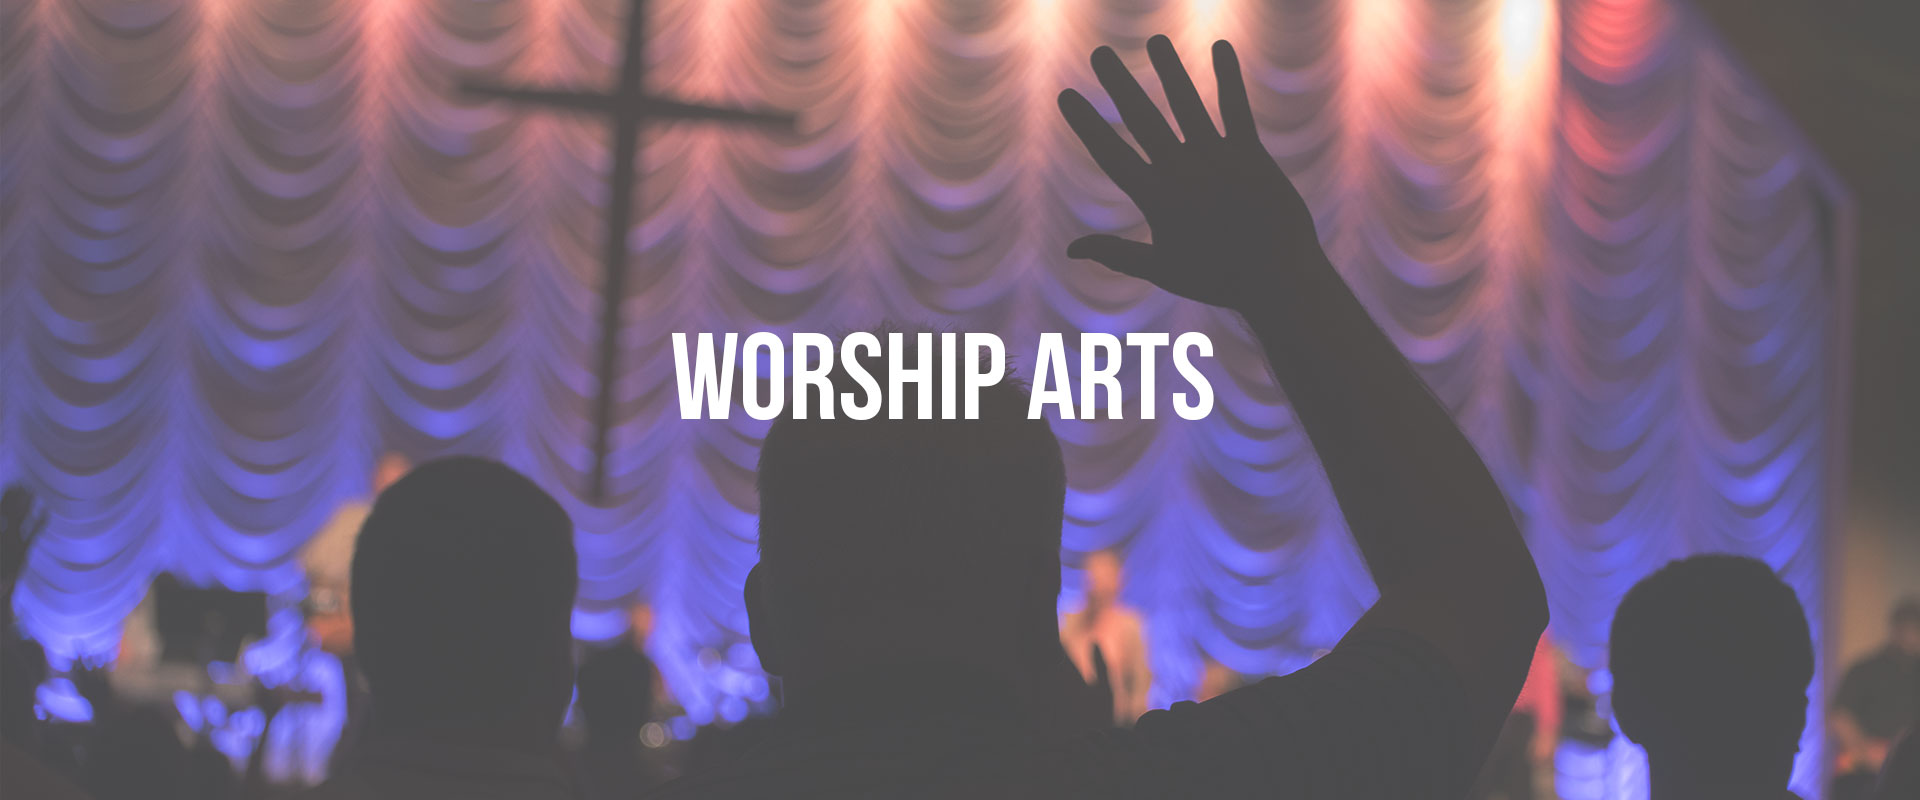 worship-arts-header-2